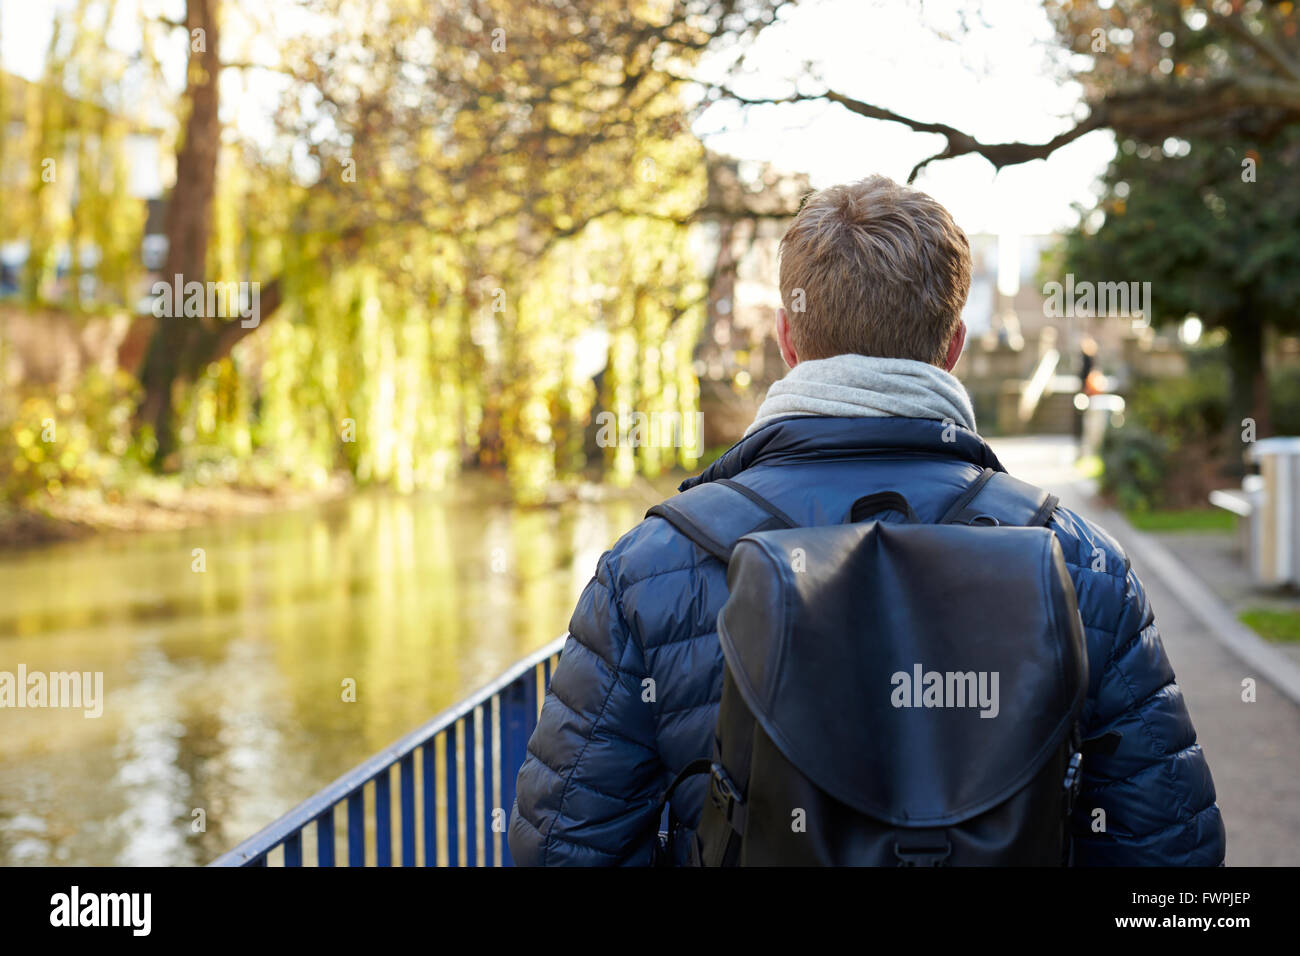 Rear View Of Young Man Walking By River In City - Stock Image